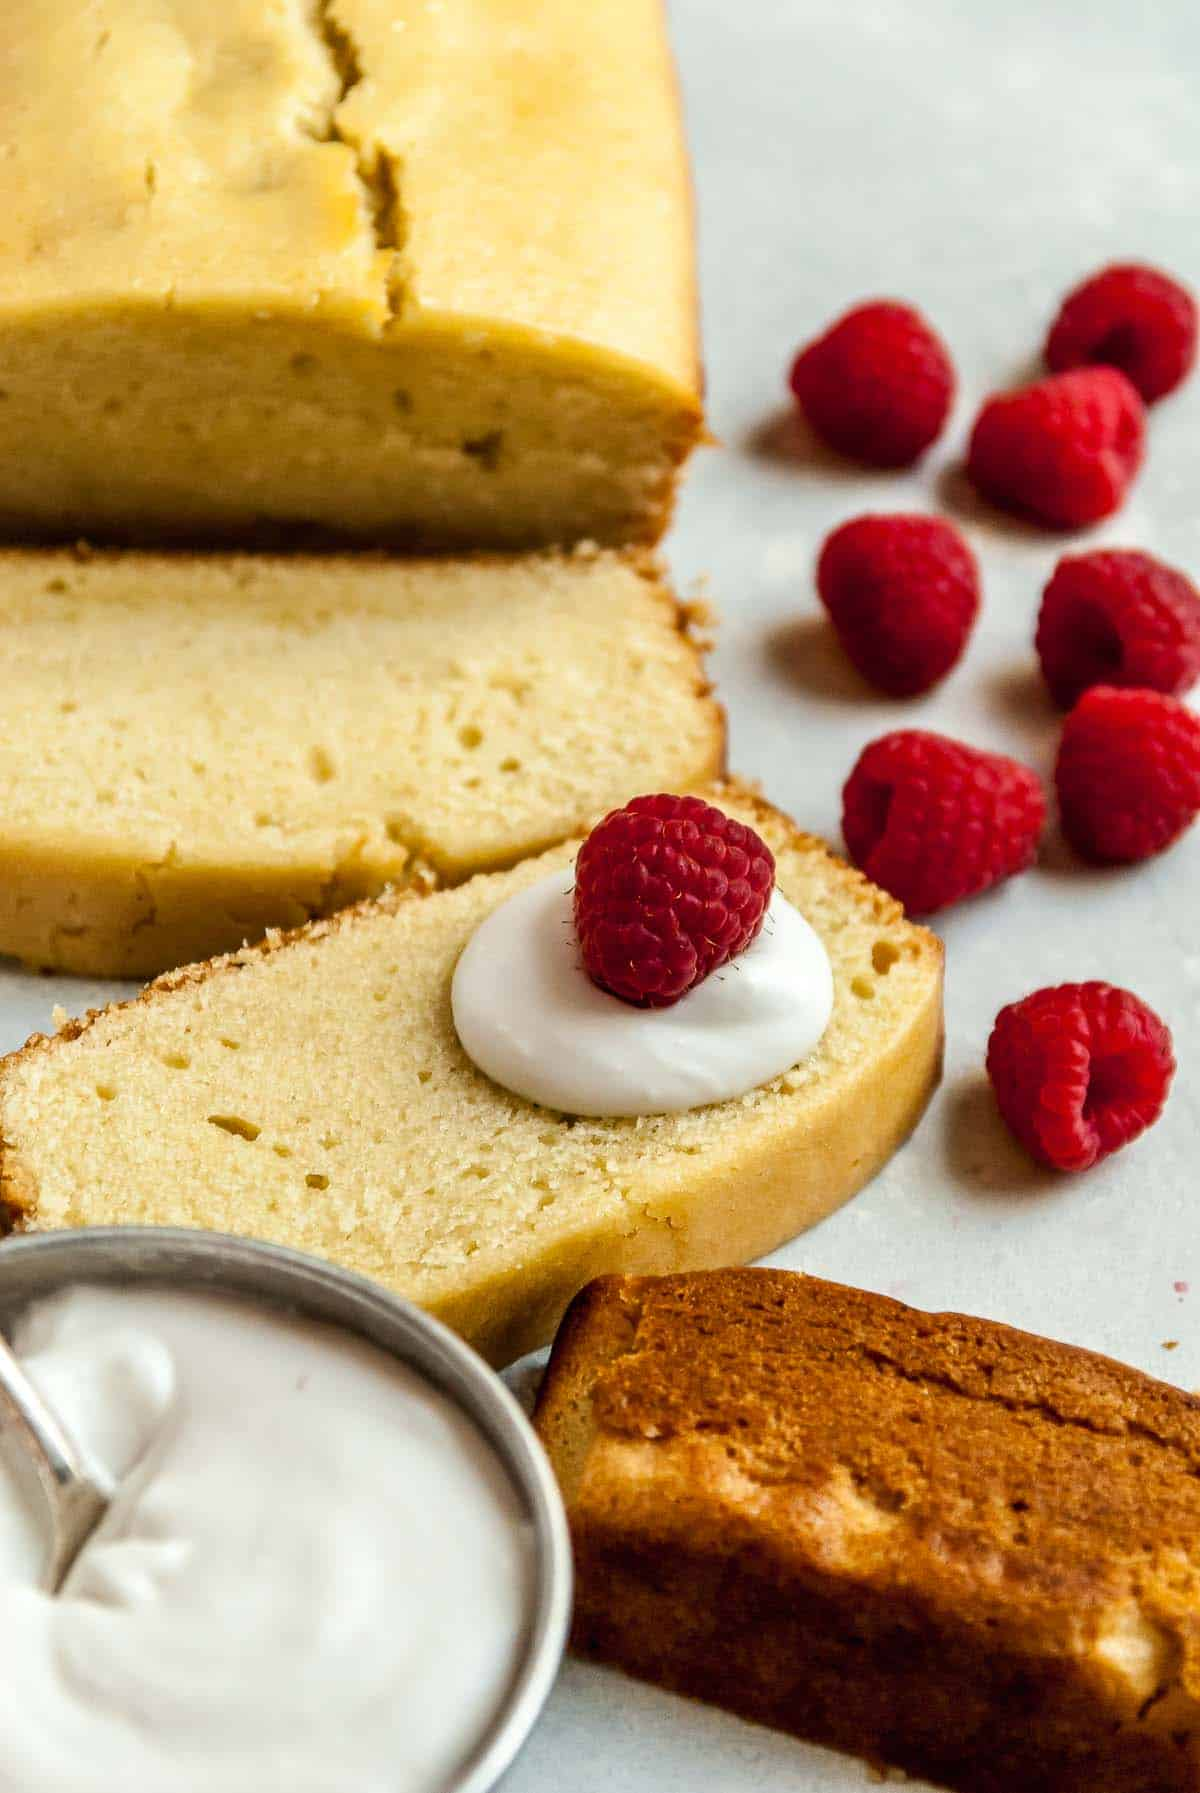 slices of vegan pound cake and raspberries